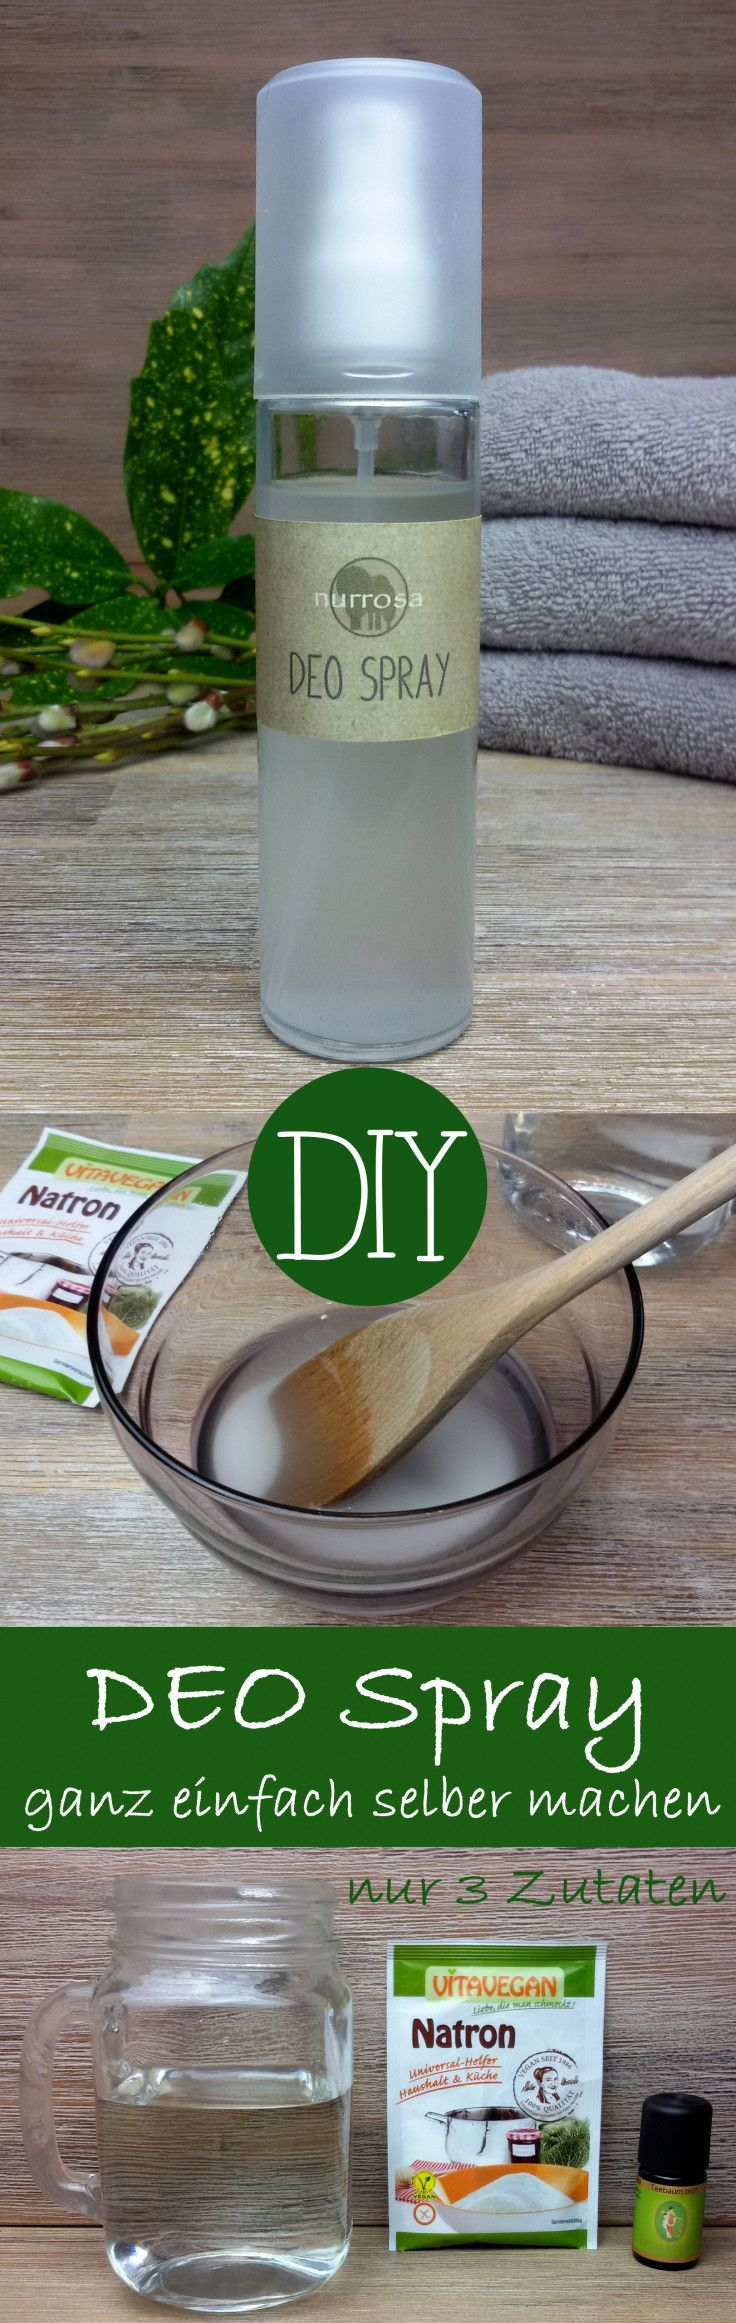 Photo of deo-spray-do-it-yourself-1